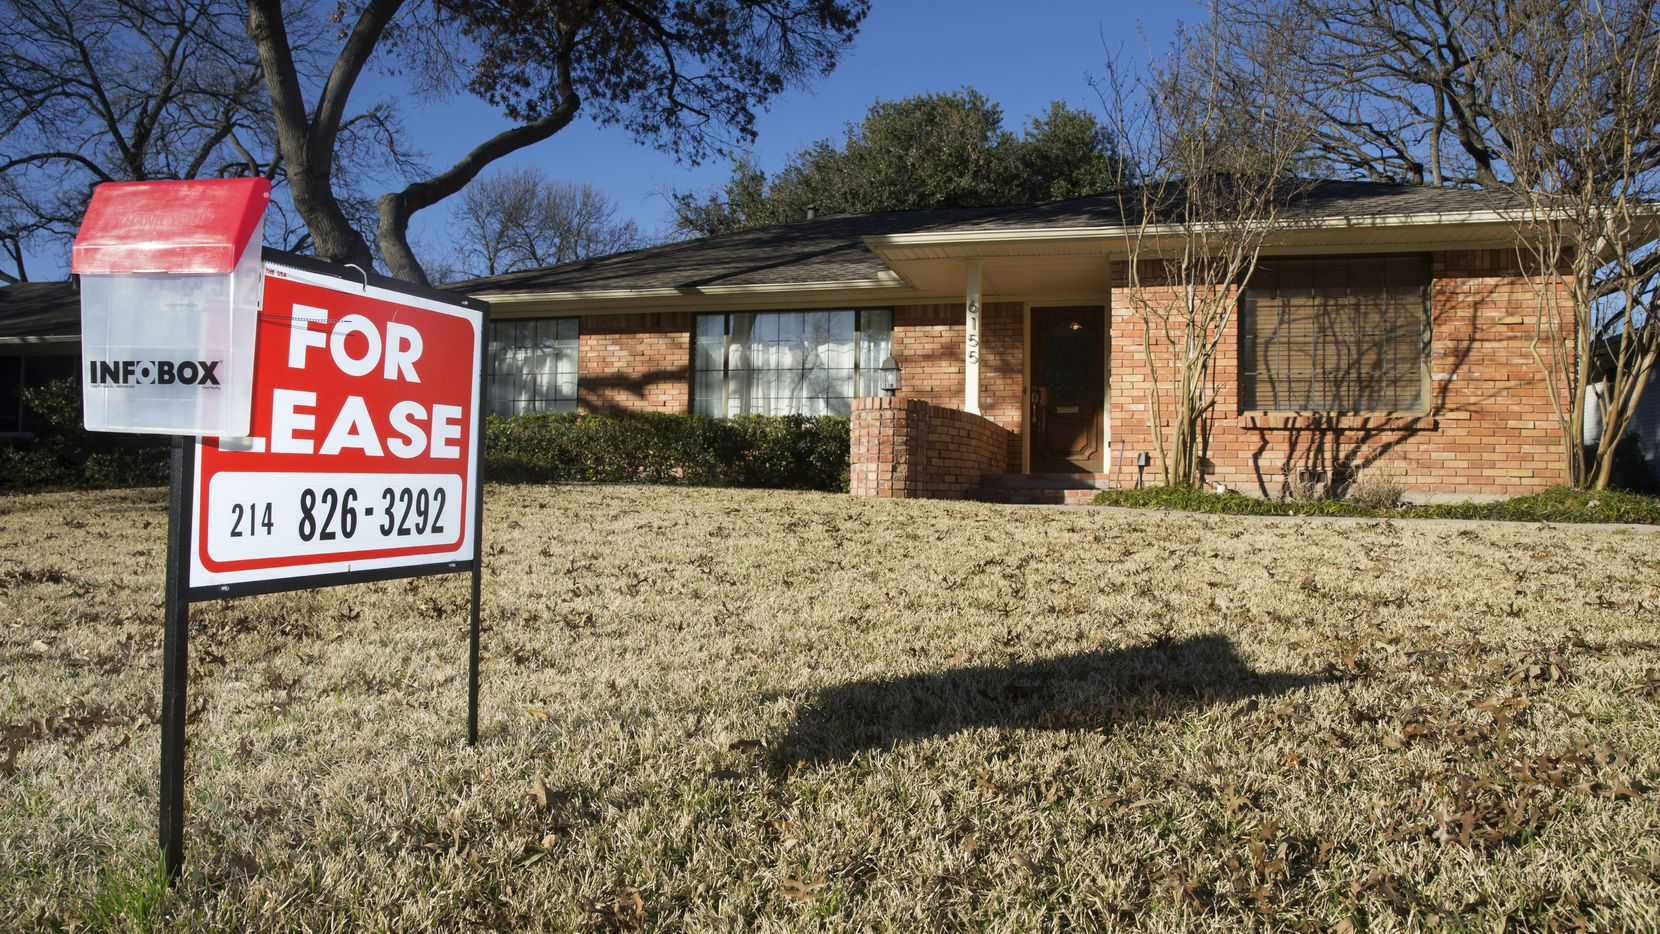 Single-family home rents in the Dallas area are up 2.4%.